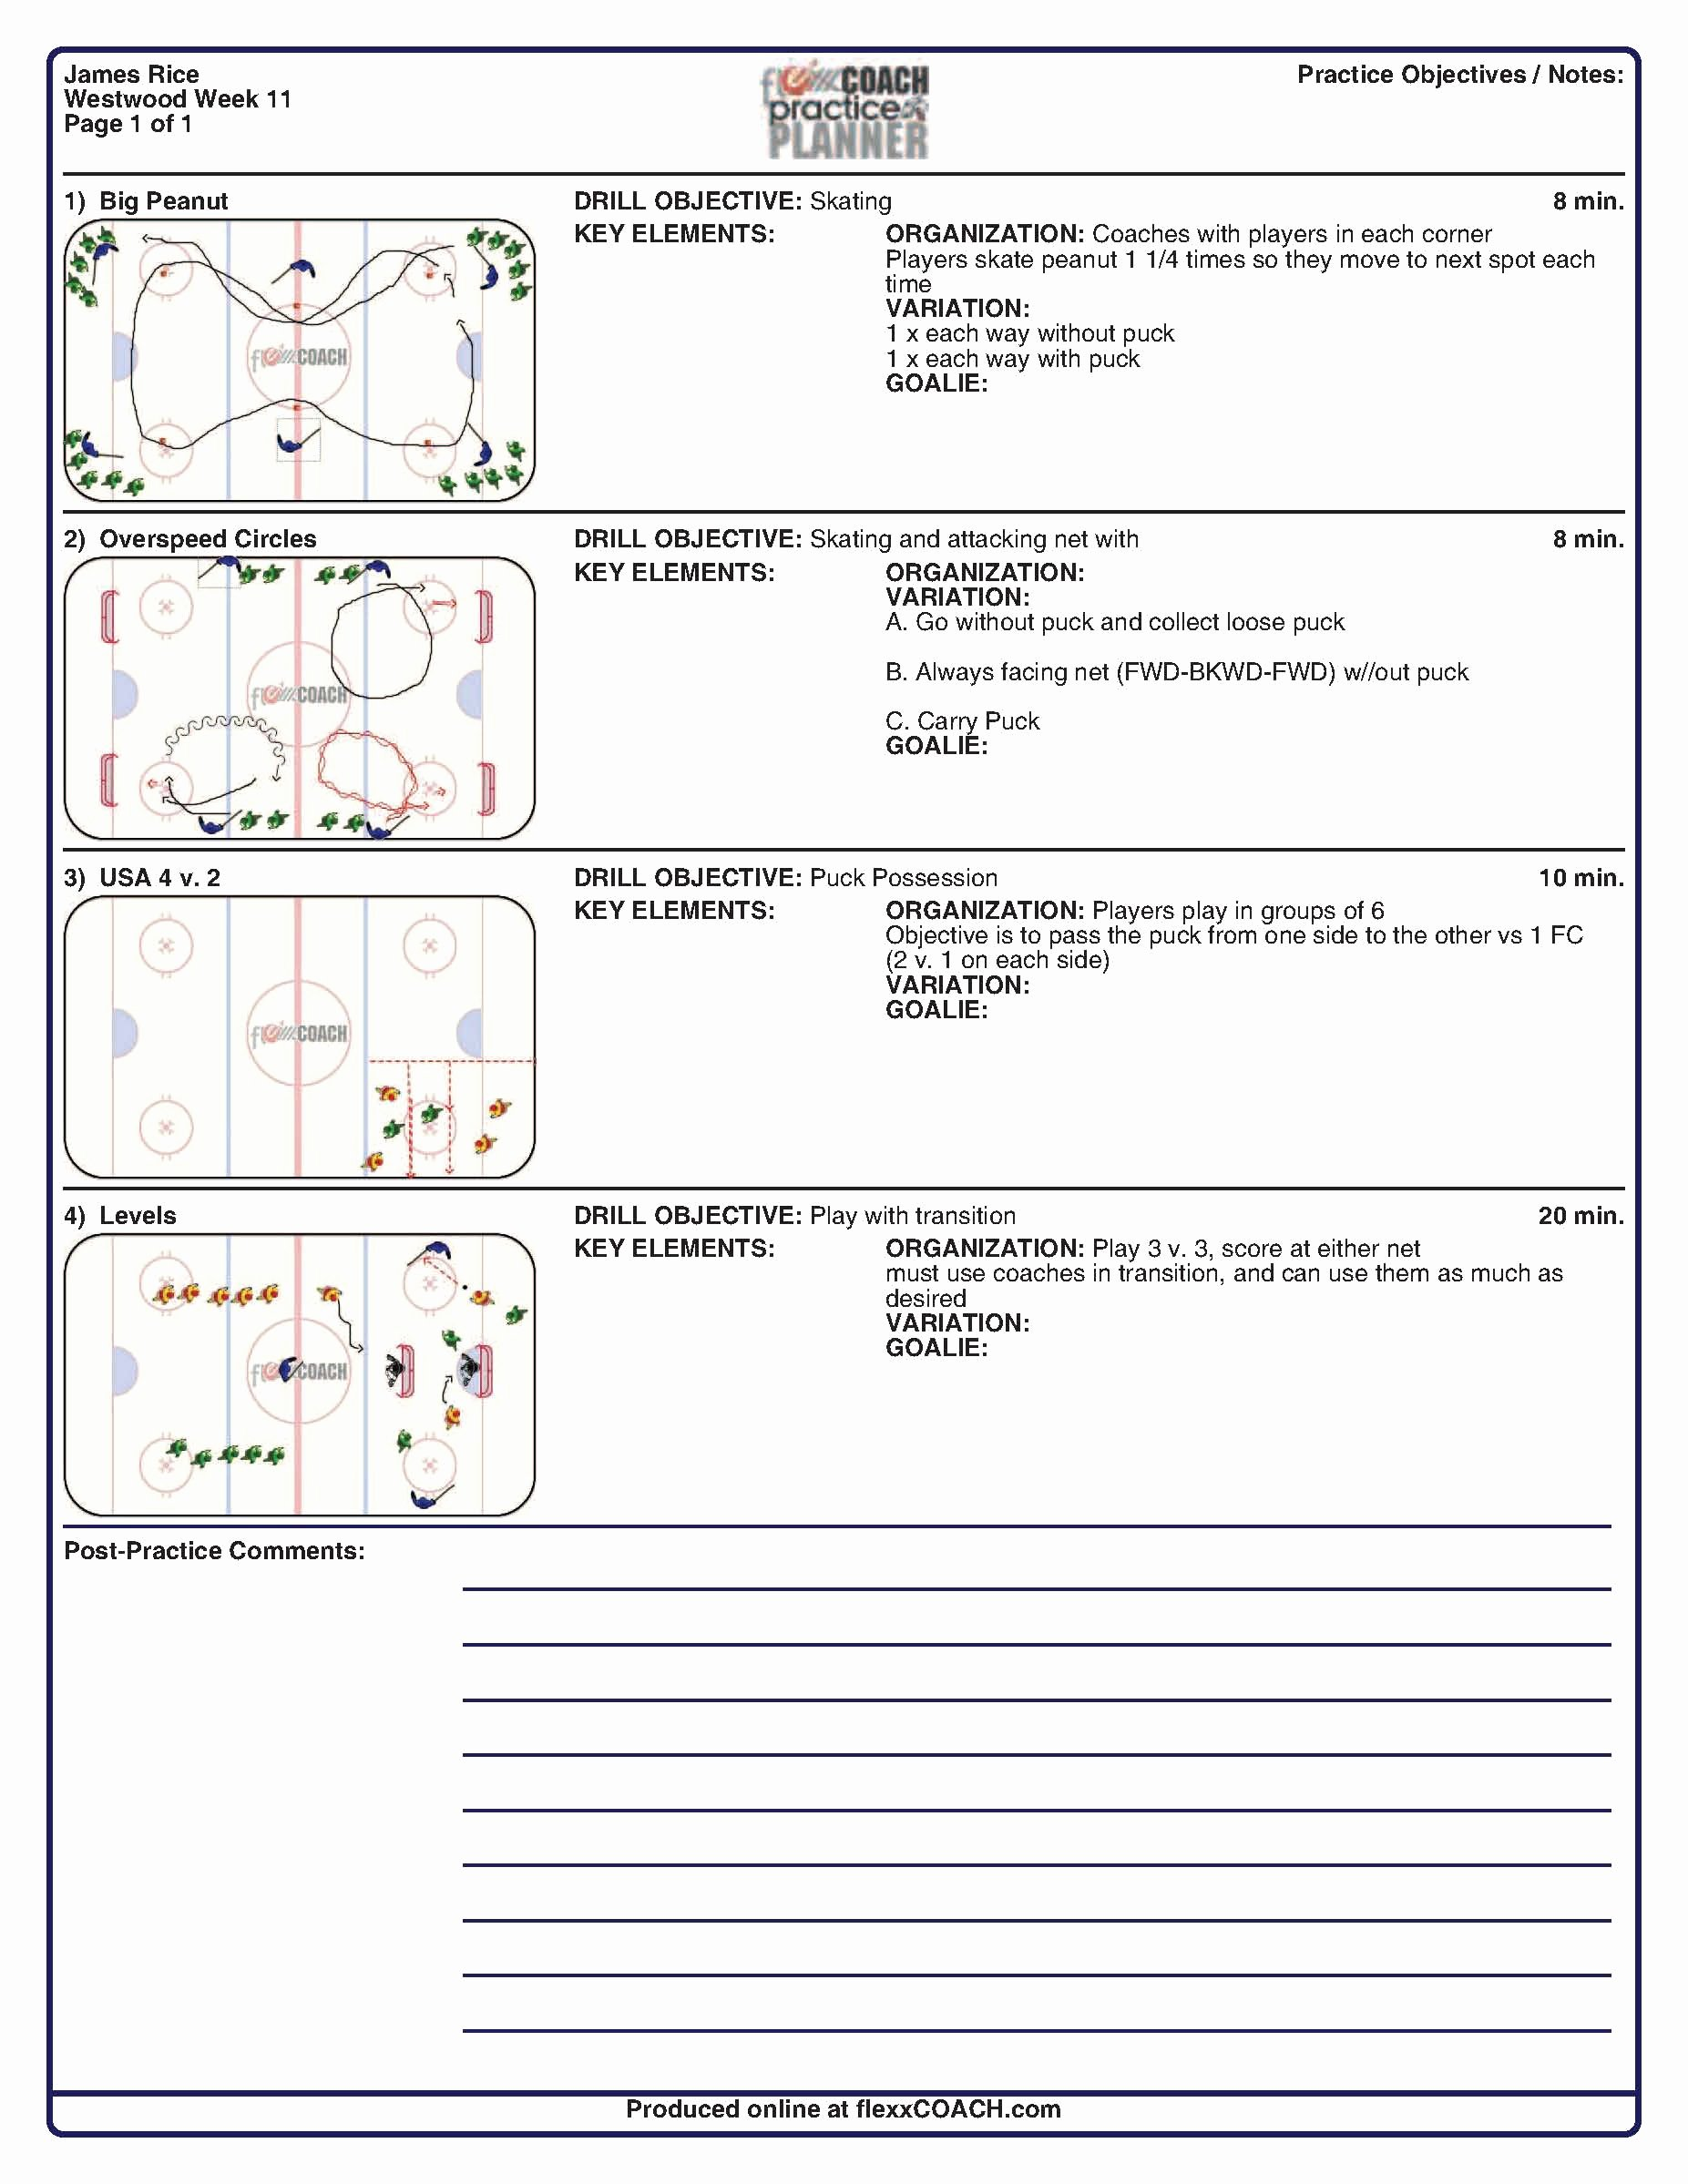 Football Practice Plan Template Unique 28 Of softball Practice Plan Template Printable